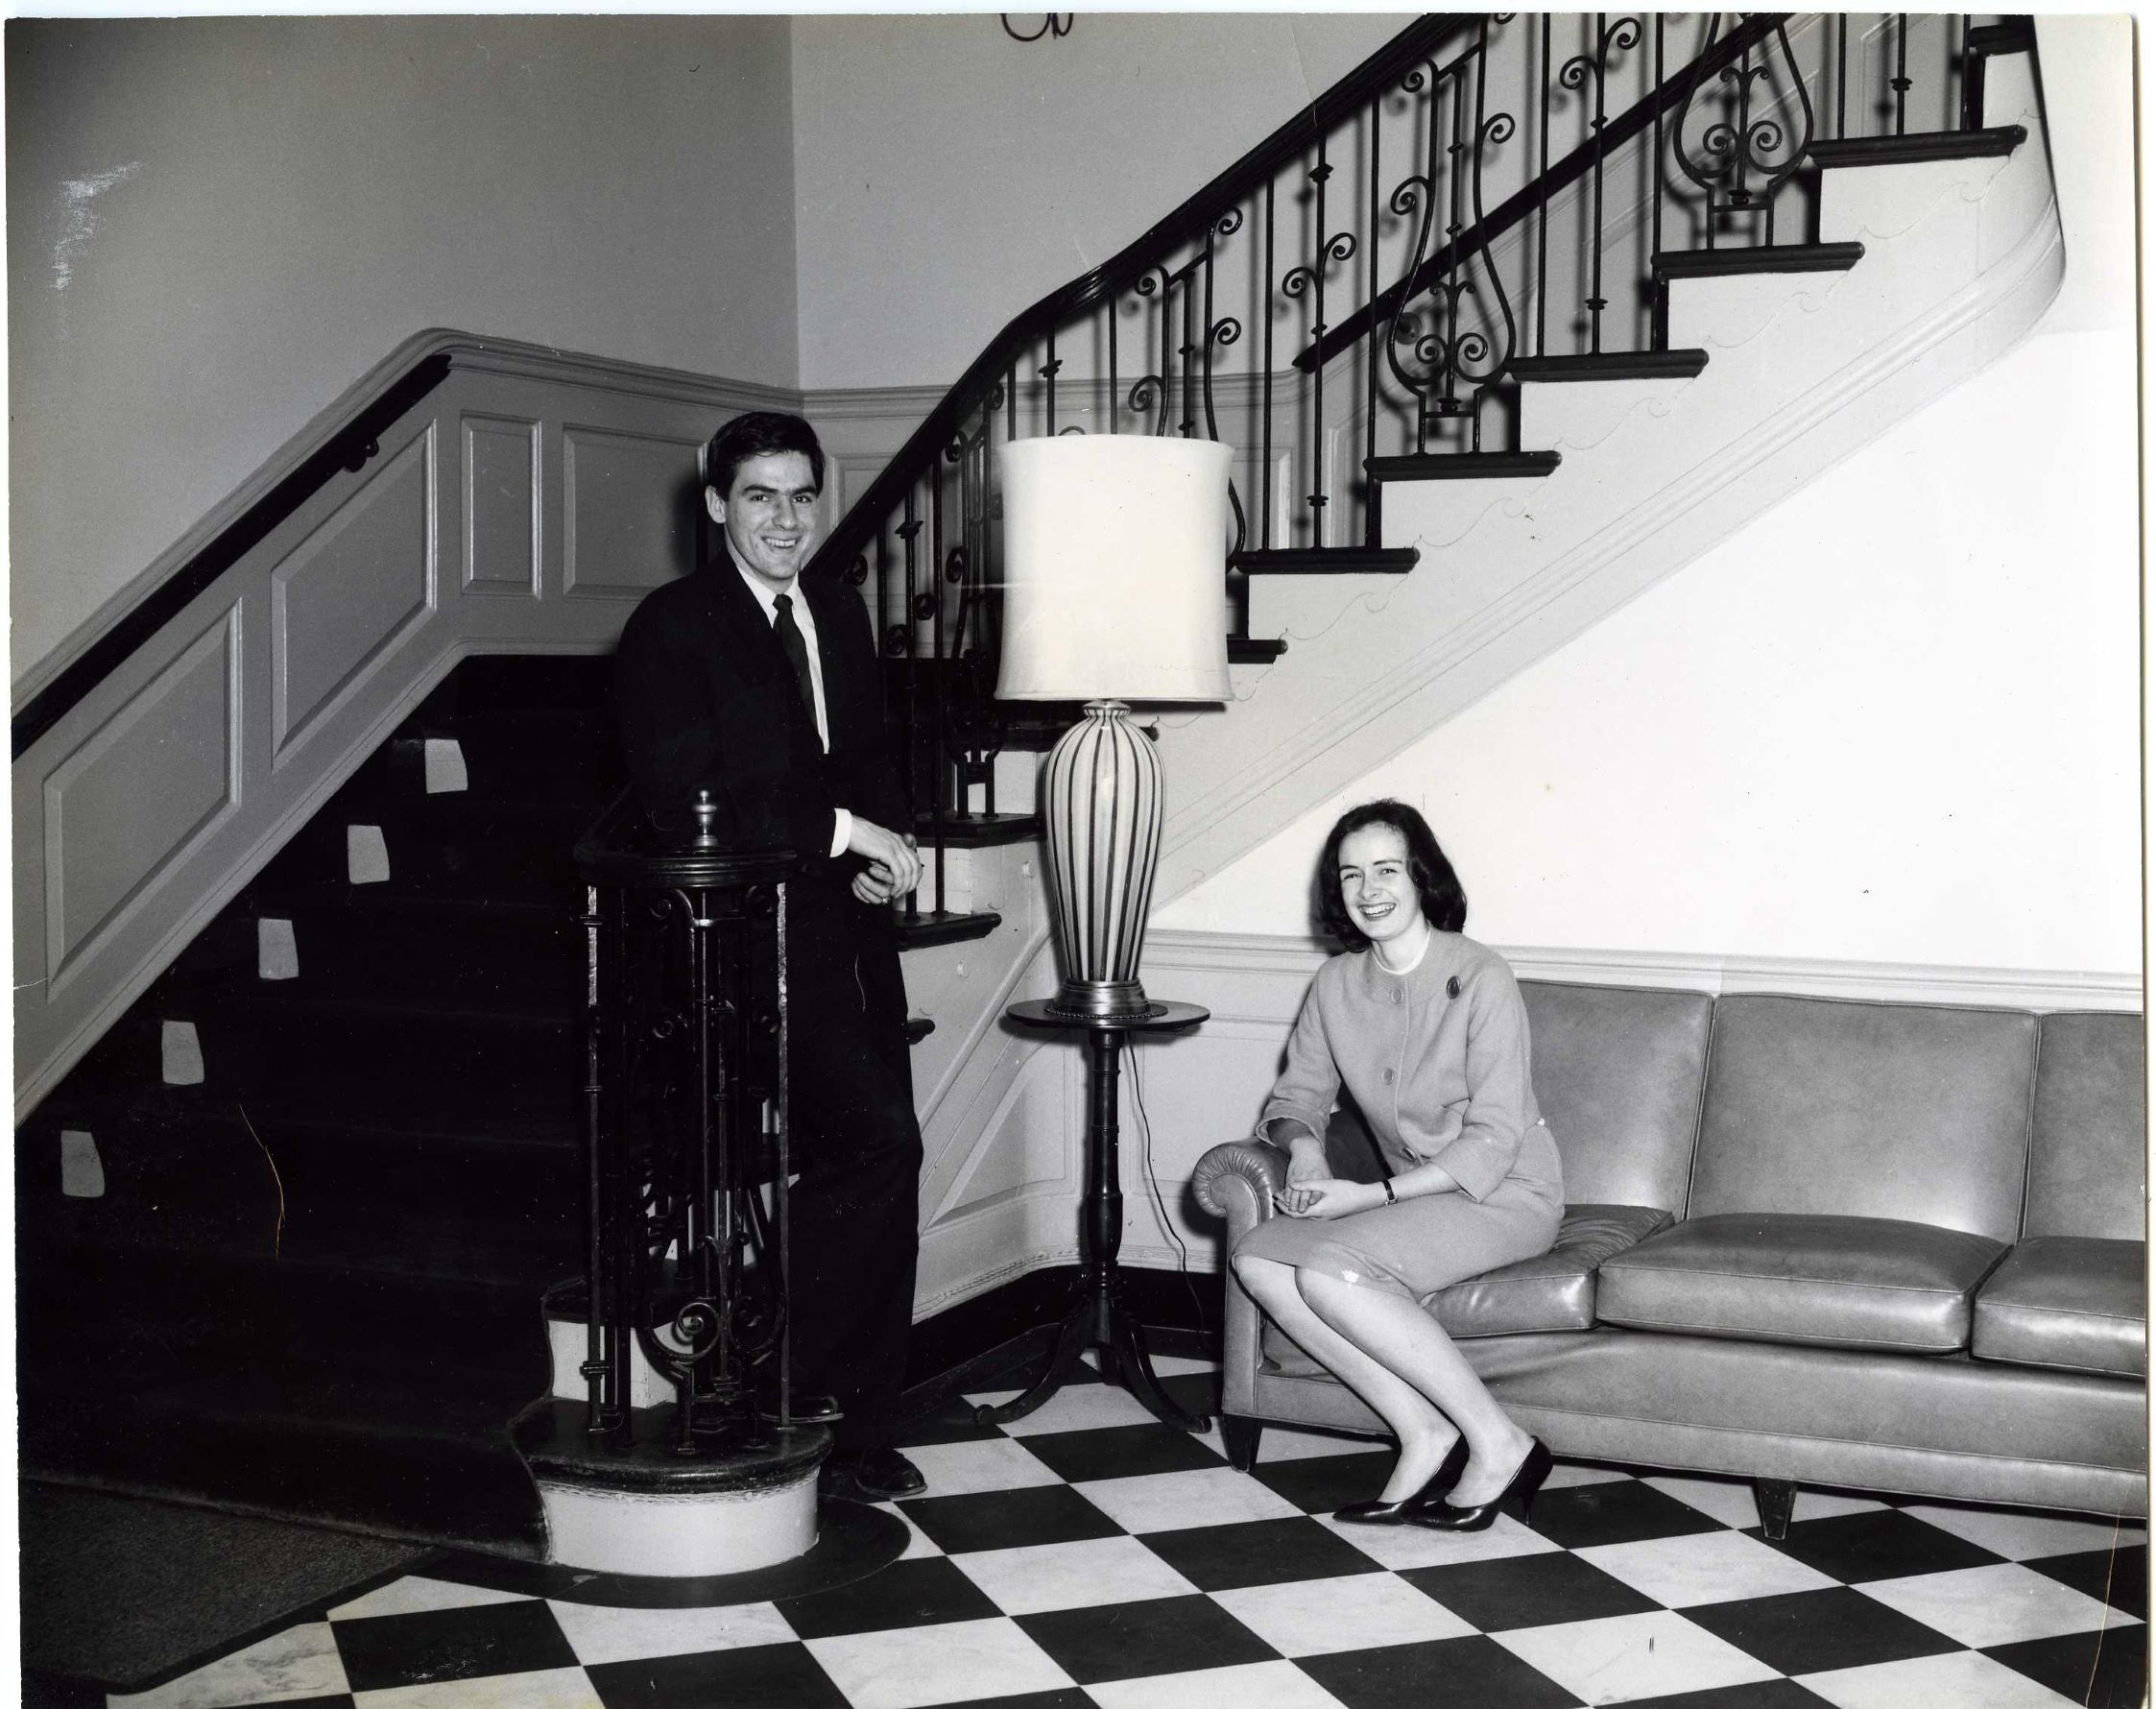 Couple posing in the Black-and-White, undated